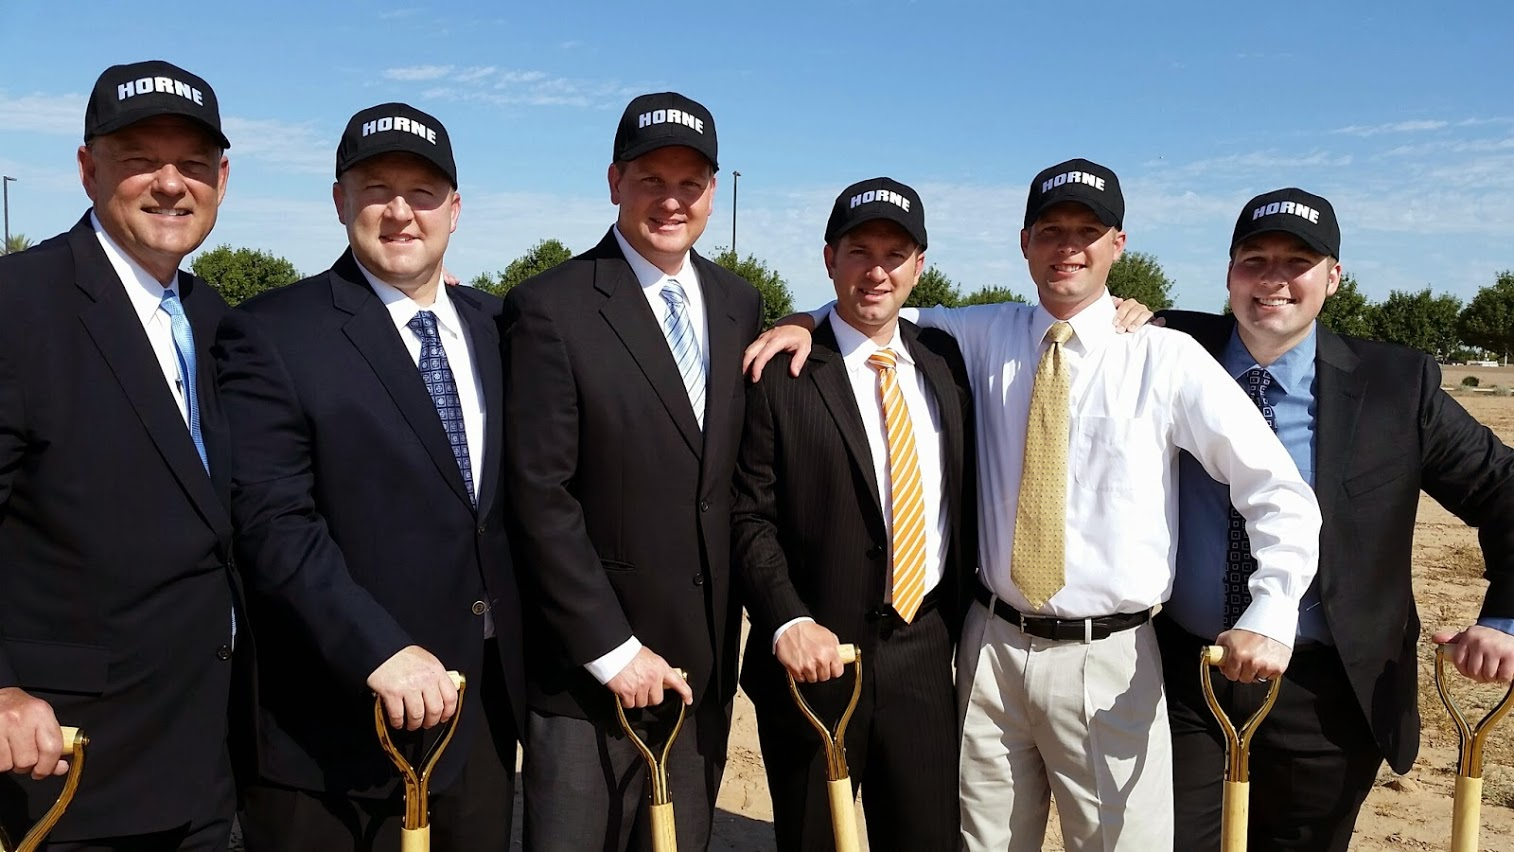 Robert Horne And His Sons—Aaron, Adam, Andrew, And Son In Law Martin Jones At The Horne Kia In Gilbert Ground Breaking. Photo Courtesy Of Lisa Horne